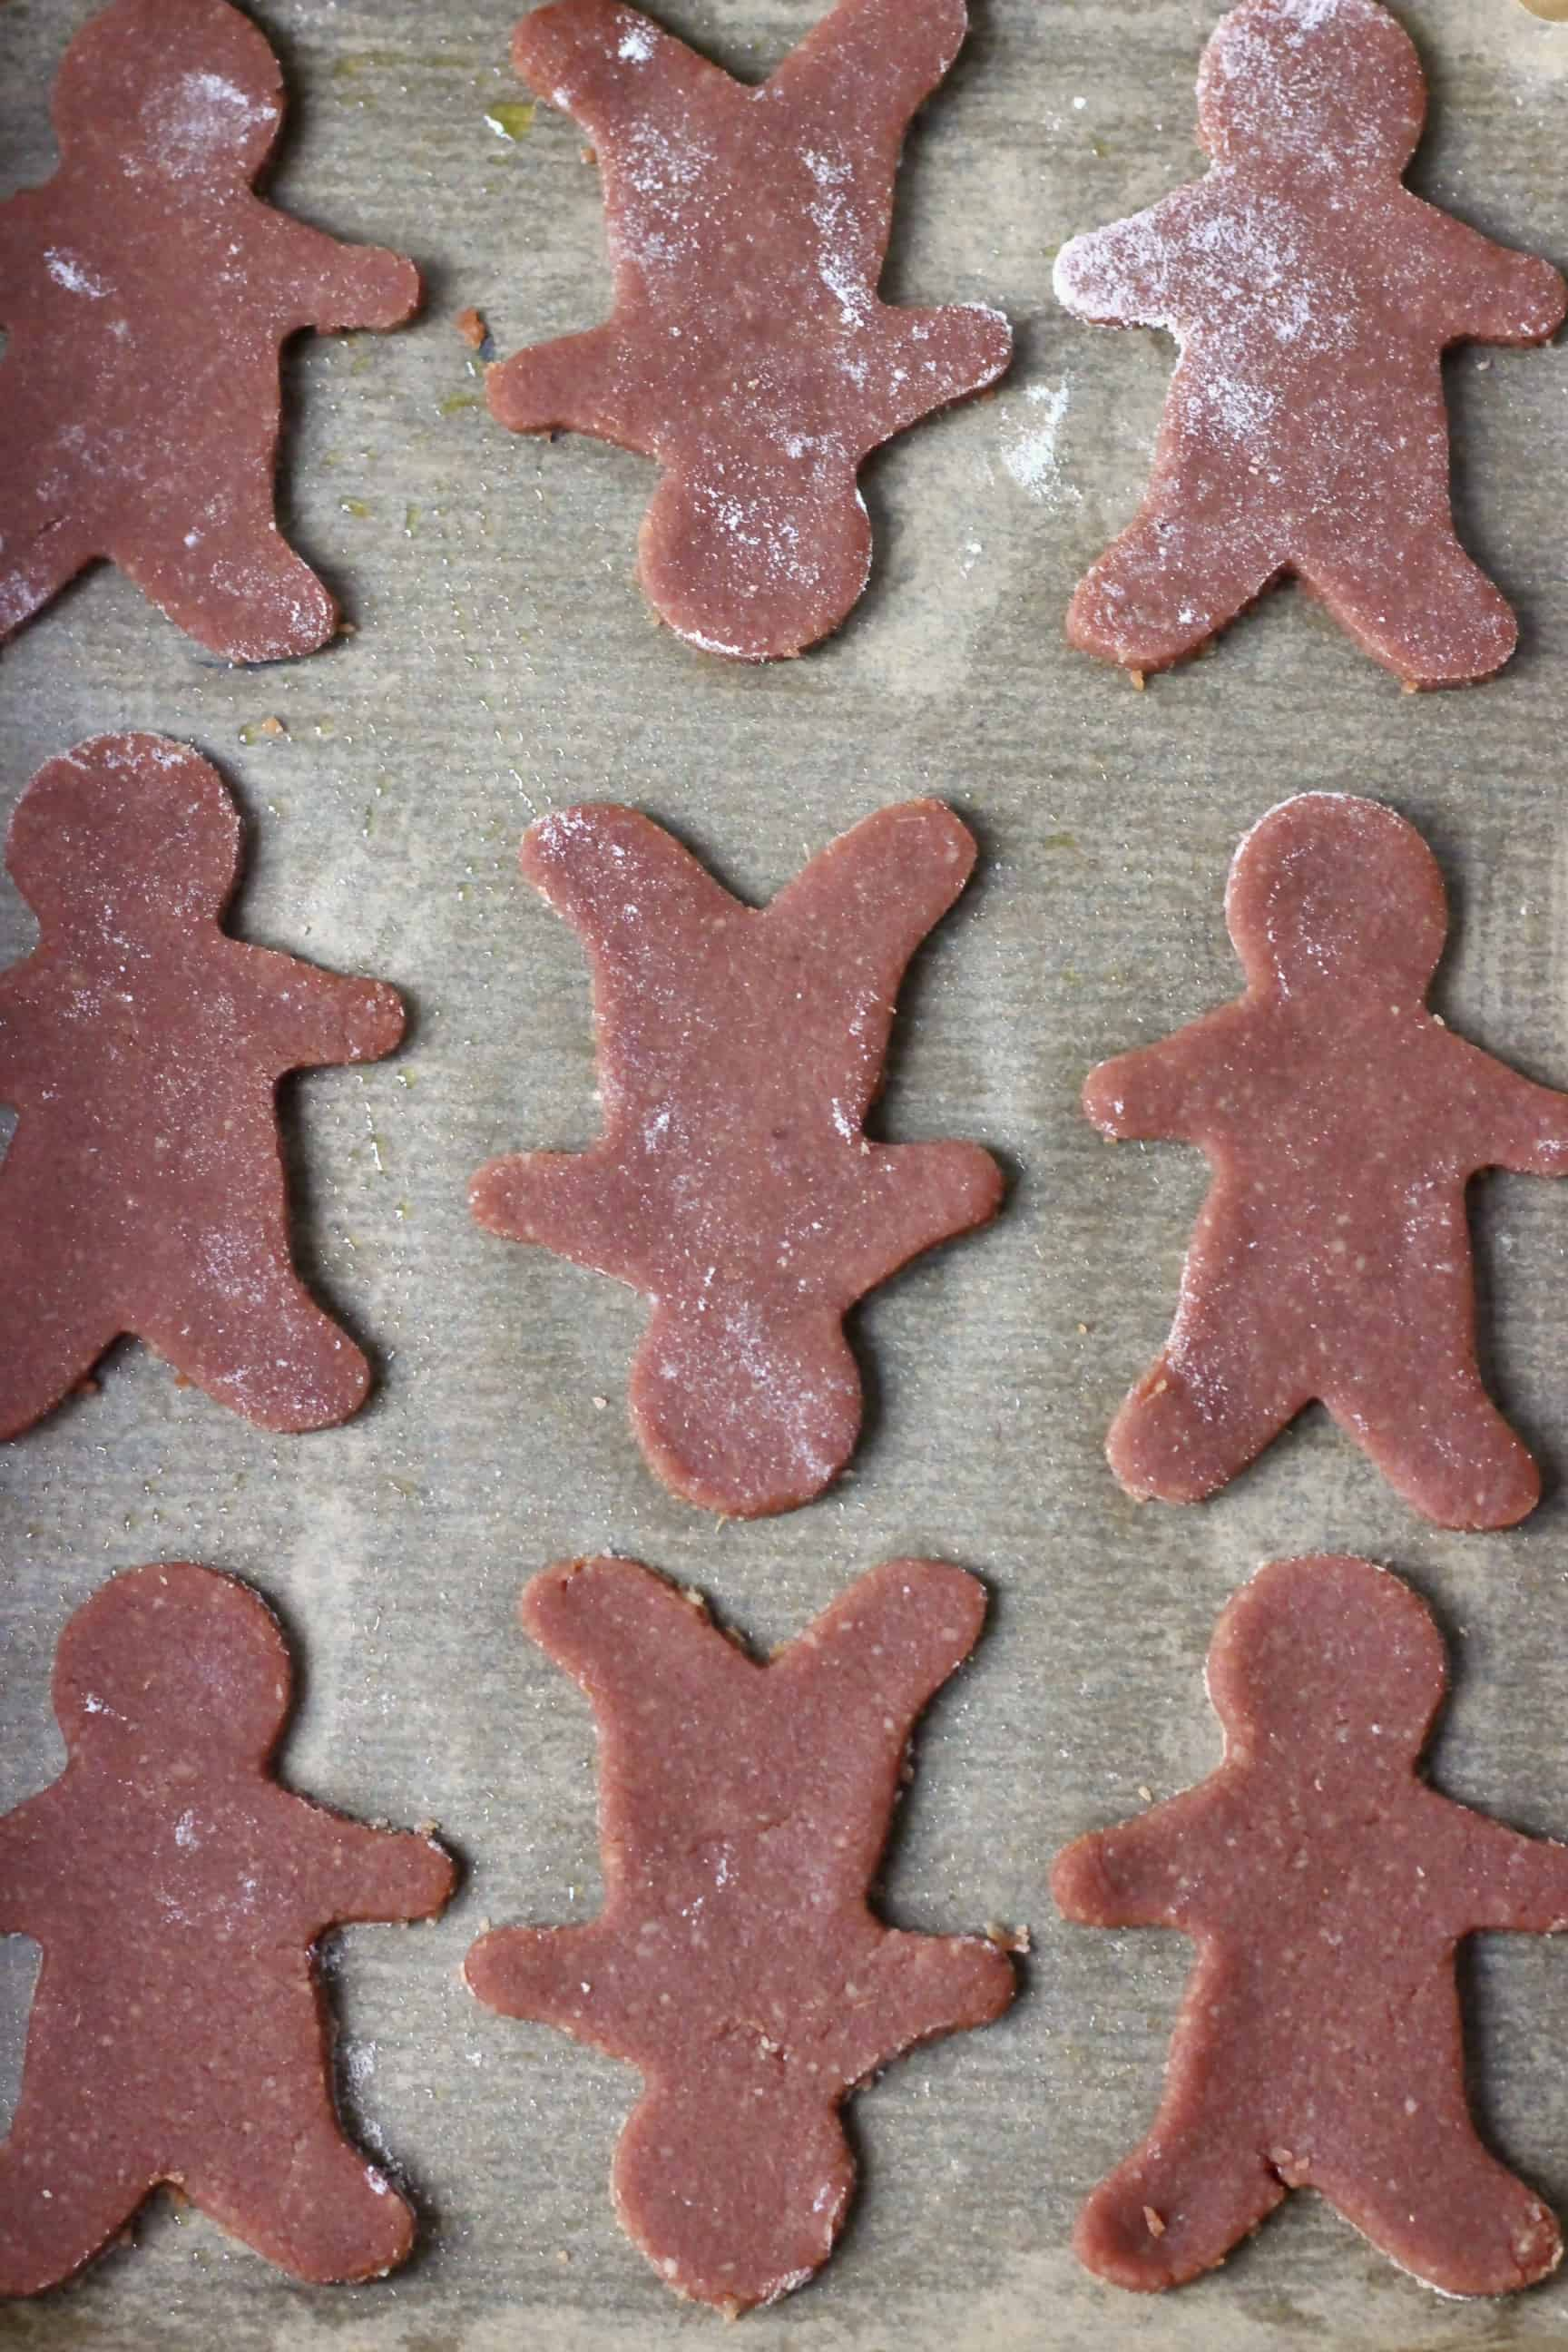 Nine raw gluten-free vegan gingerbread cookies on a sheet of baking paper